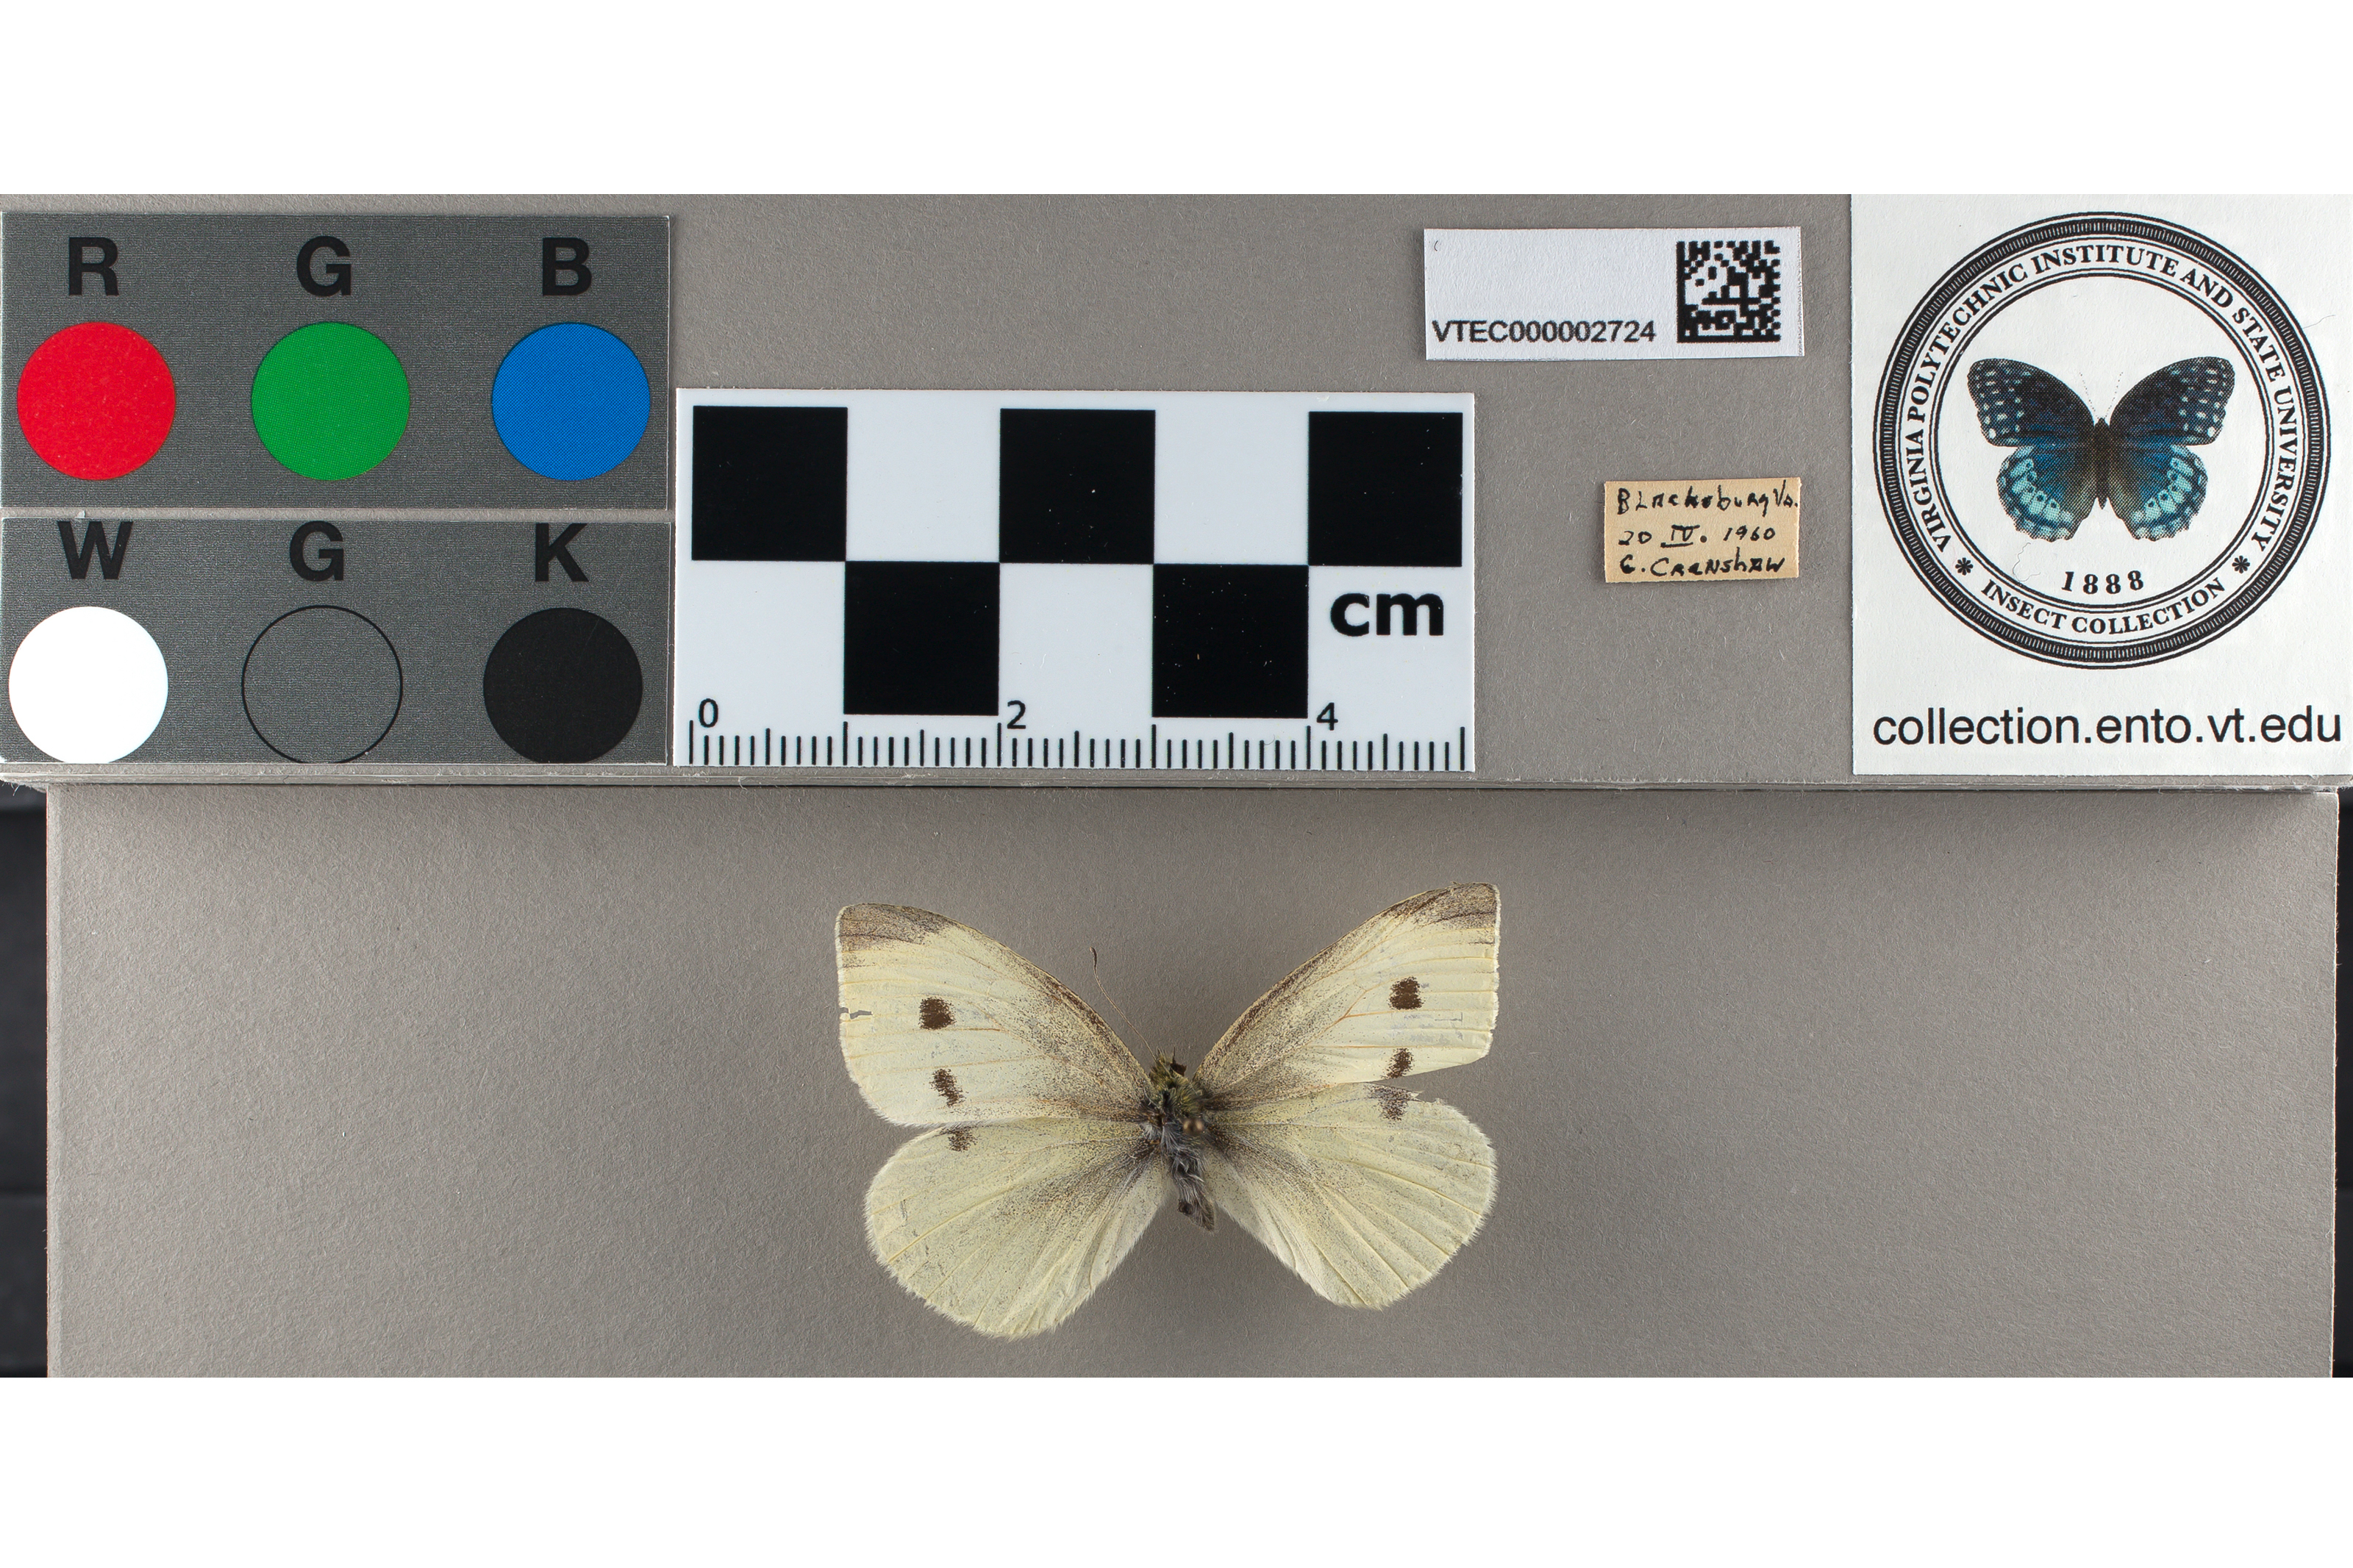 Sample lab set with butterfly color grid and butterfly stamp